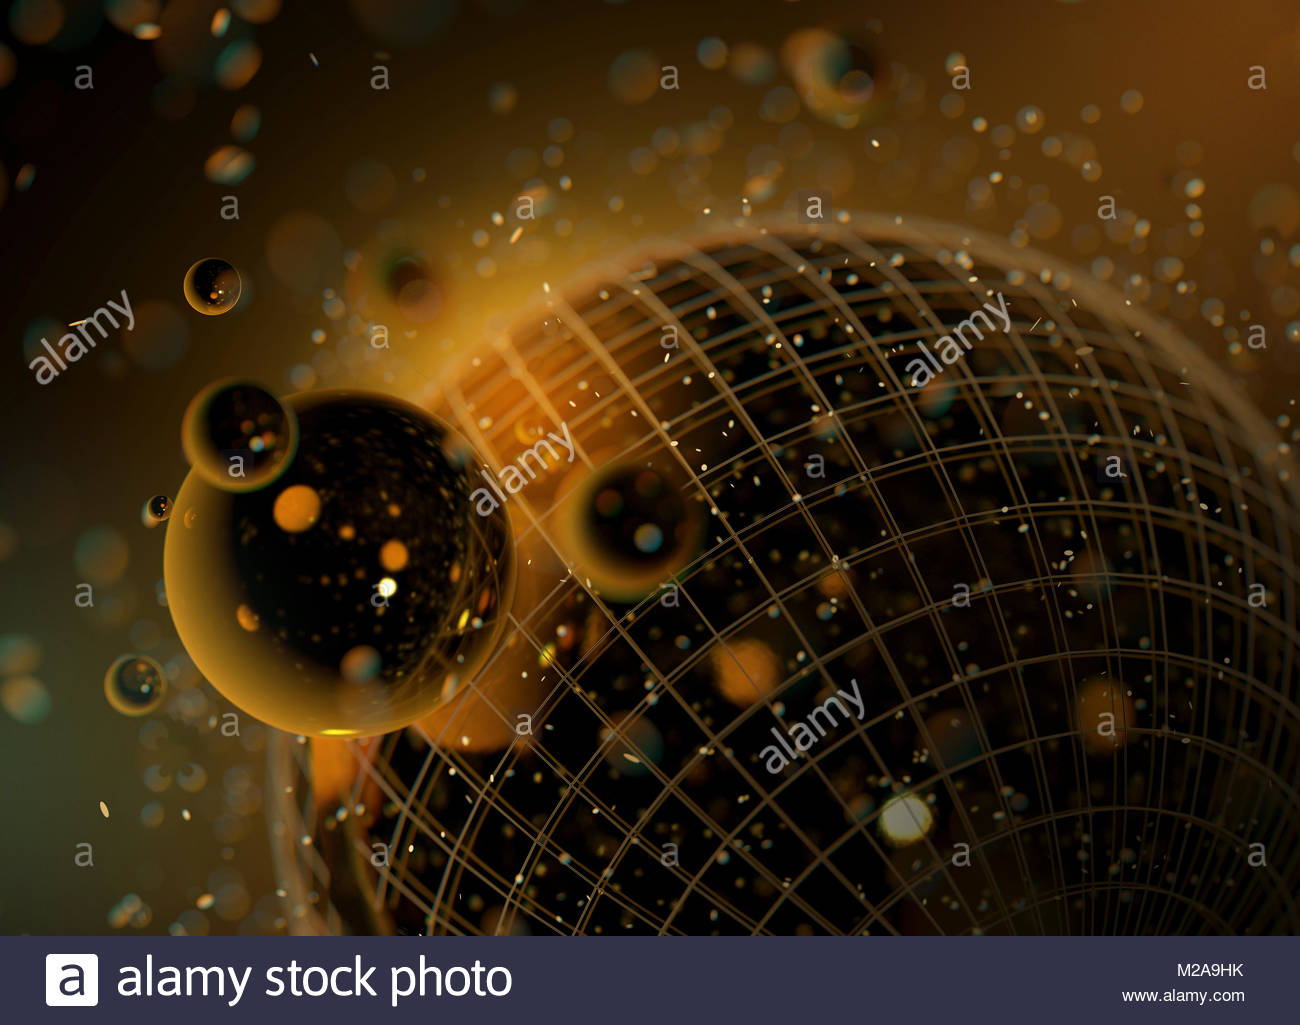 Abstract pattern of shiny gold spheres orbiting wire mesh sphere - Stock Image